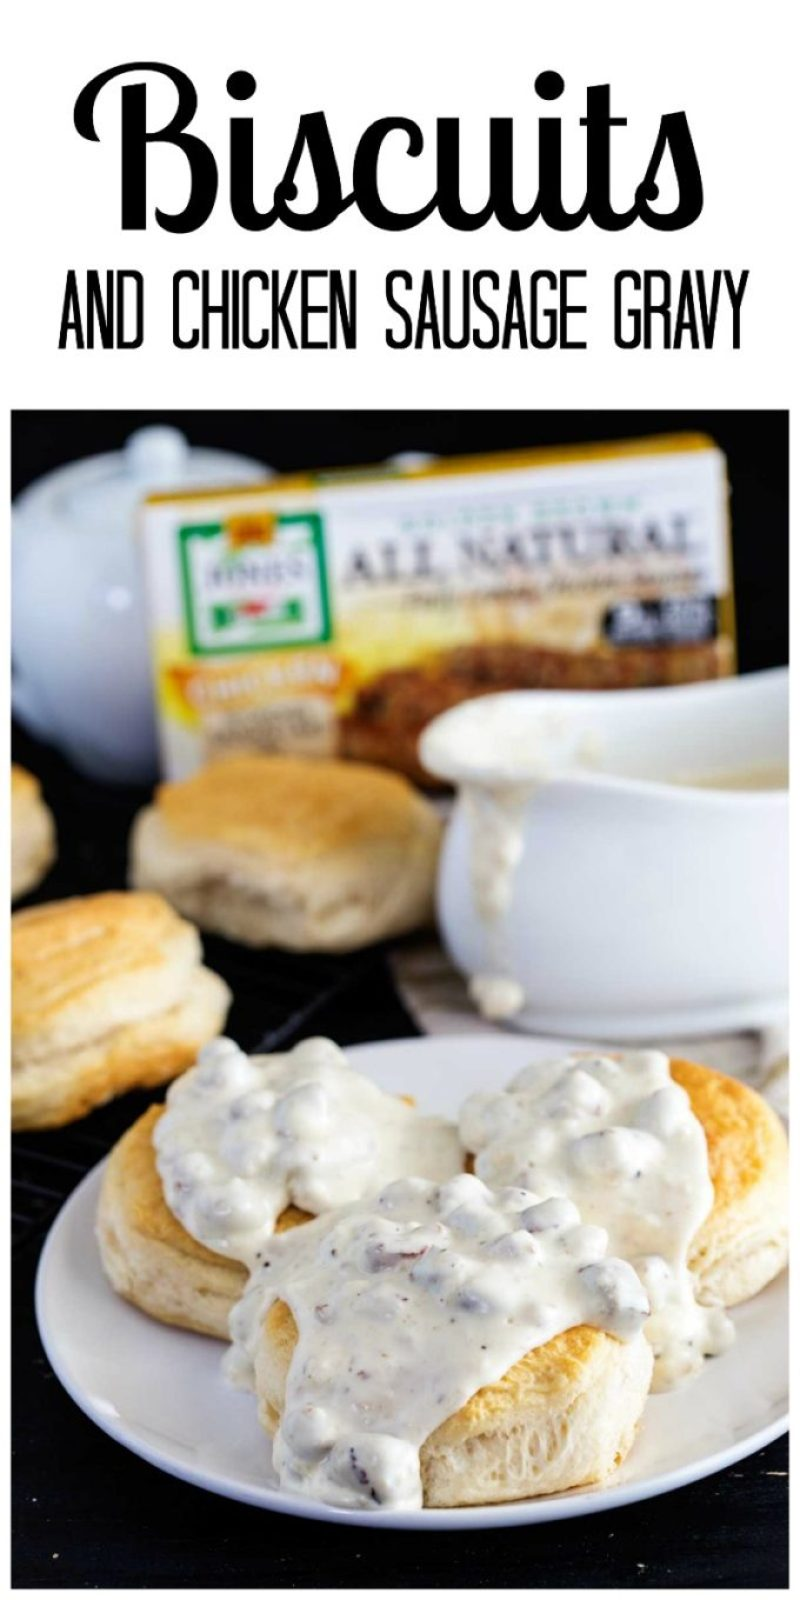 Biscuits and chicken sausage gravy, a hearty breakfast, a simple breakfast